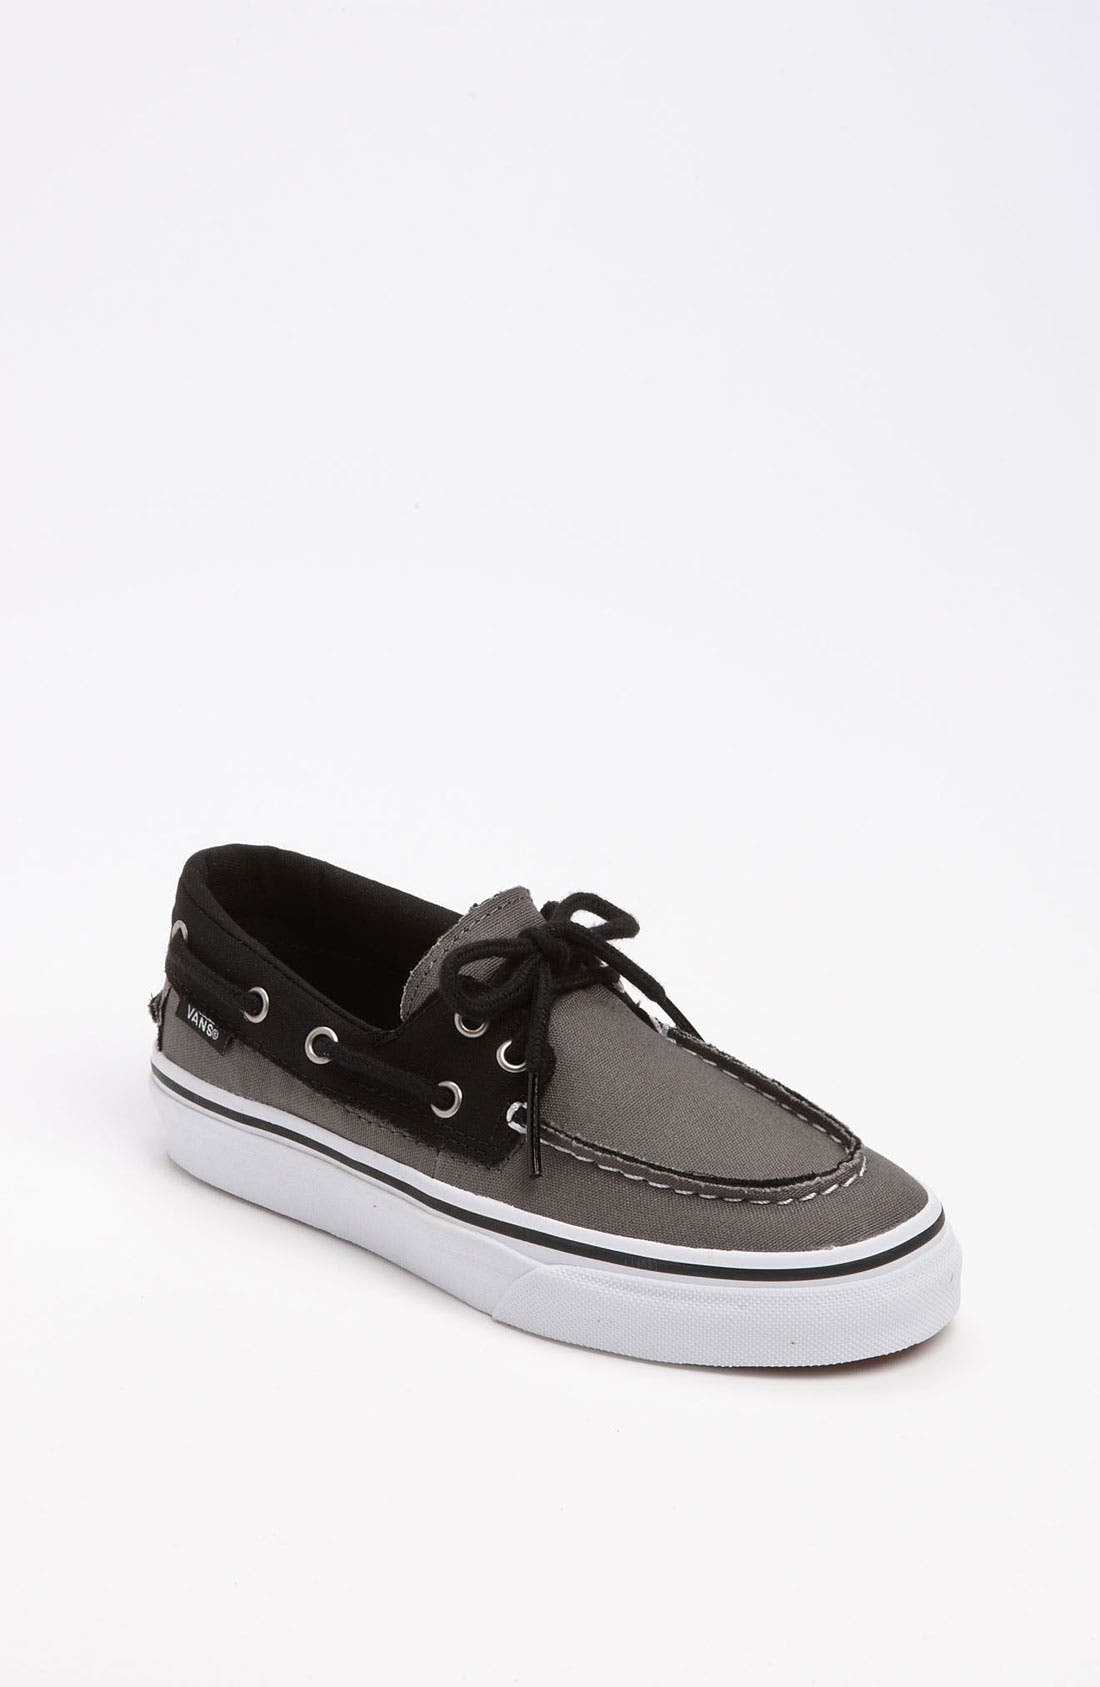 Main Image - Vans 'Zapato del Barco' Boat Shoe (Baby, Walker, Toddler, Little Kid & Big Kid)